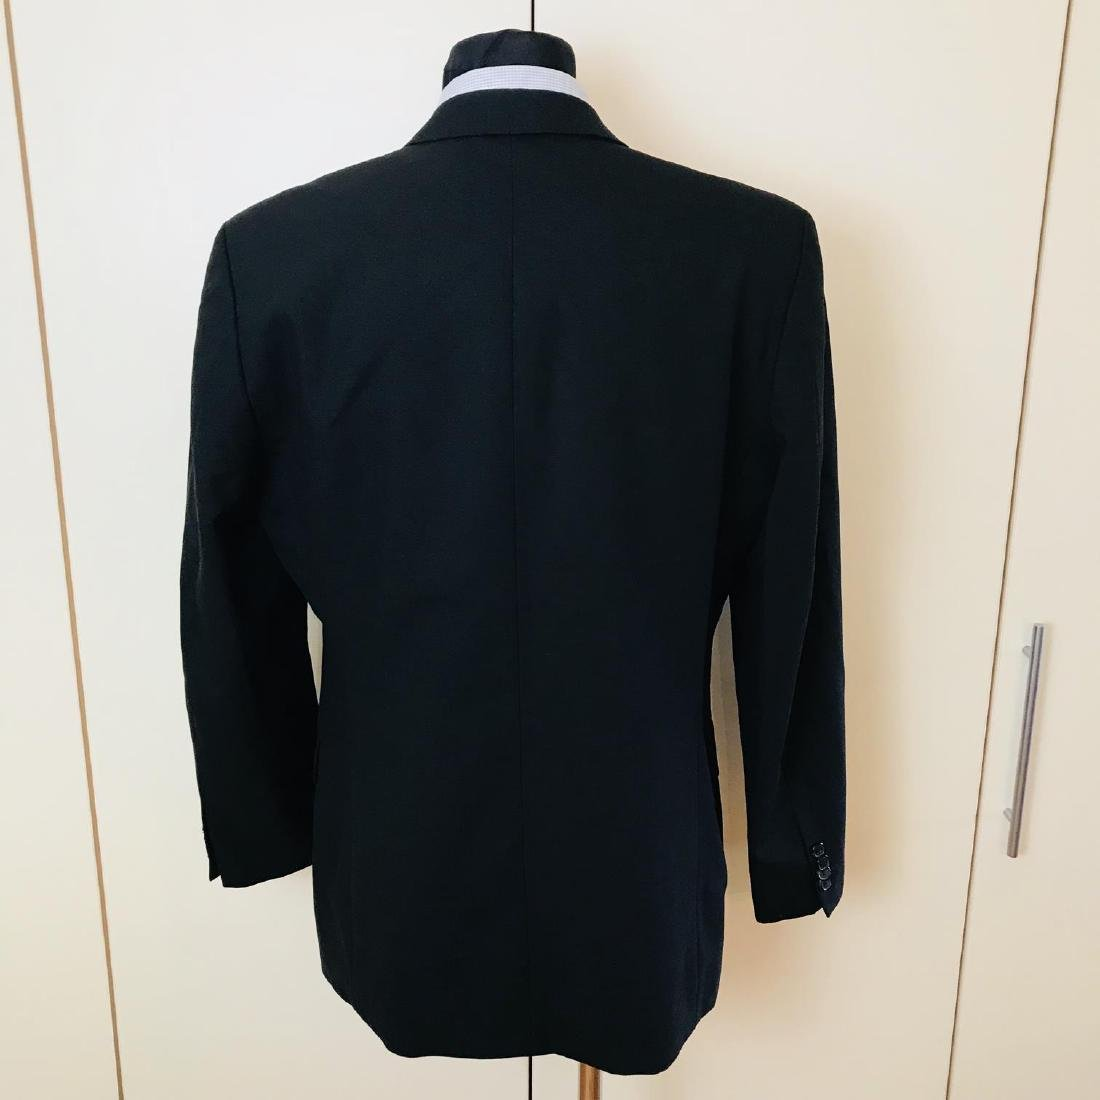 Men's HUGO BOSS Blazer Jacket Size US 42 EUR 52 - 5